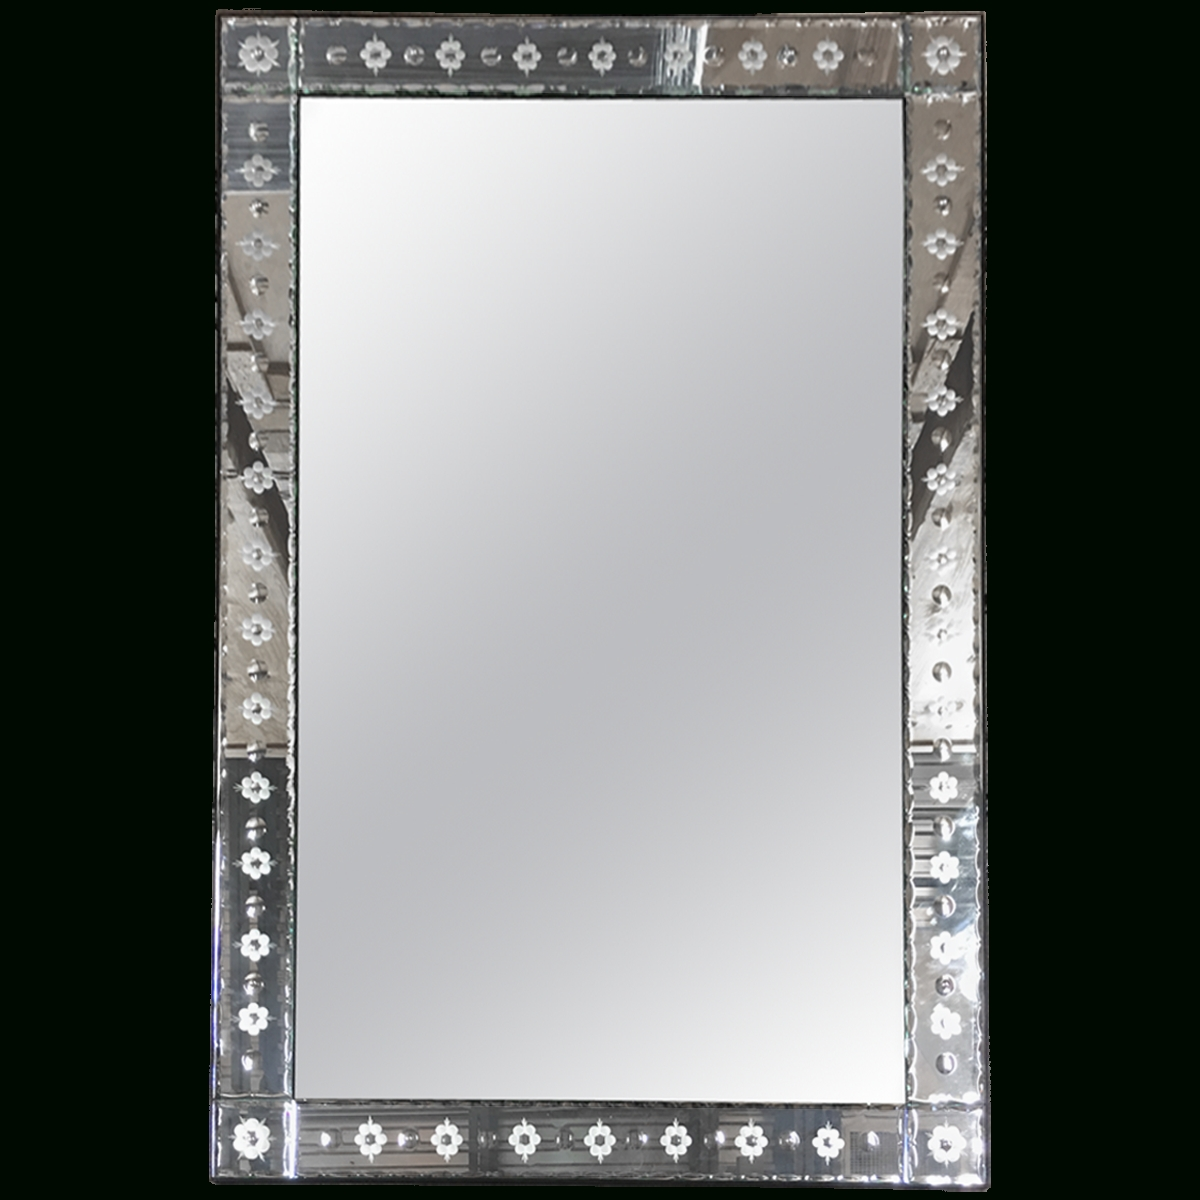 Accessories | Designer Mirrors, Full Length Mirrors, And Wall within Art Nouveau Wall Mirrors (Image 4 of 25)